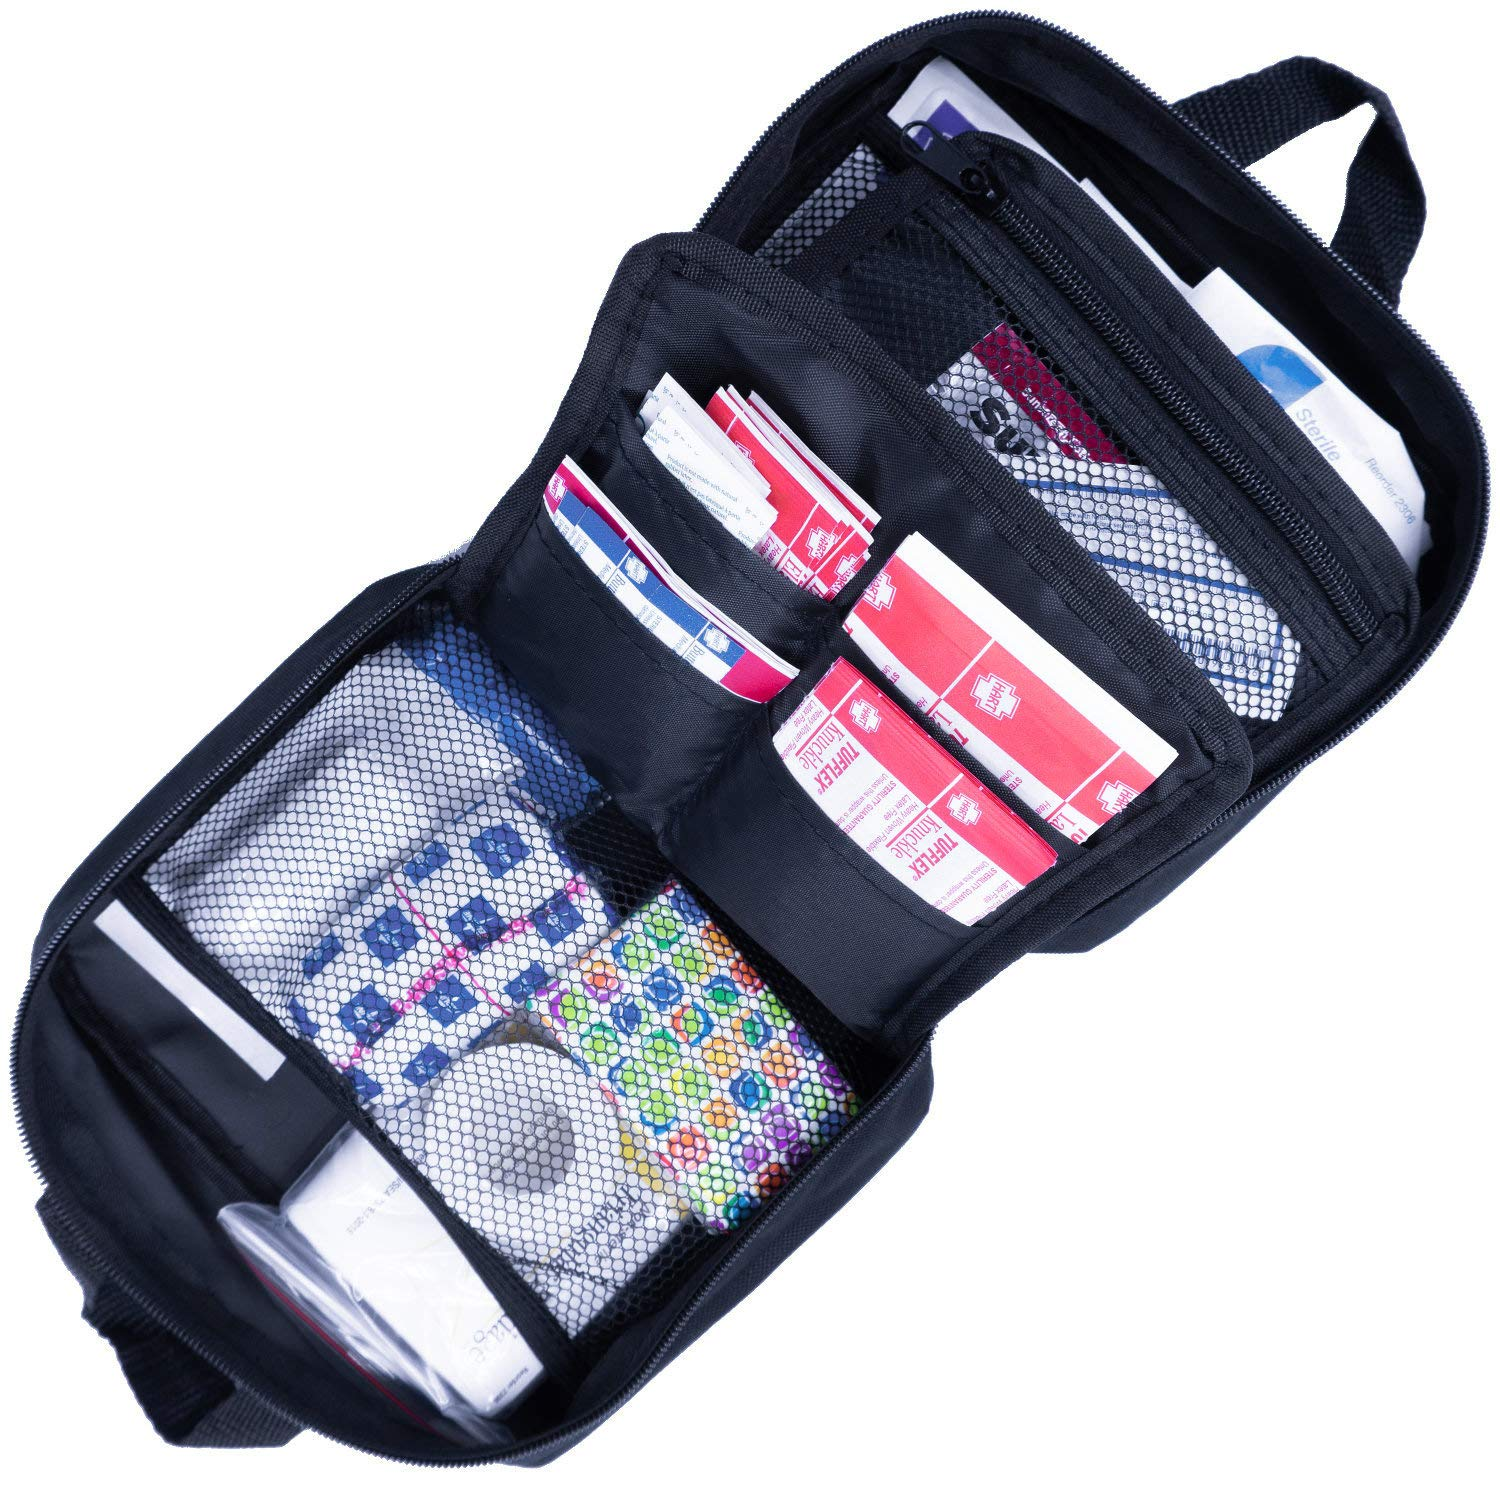 Compact Kit with 100 Essentials to fit Bag or Backpack Home. PreparaKit Travel First Aid Kit for Sports and Survival Kit for Mom Car